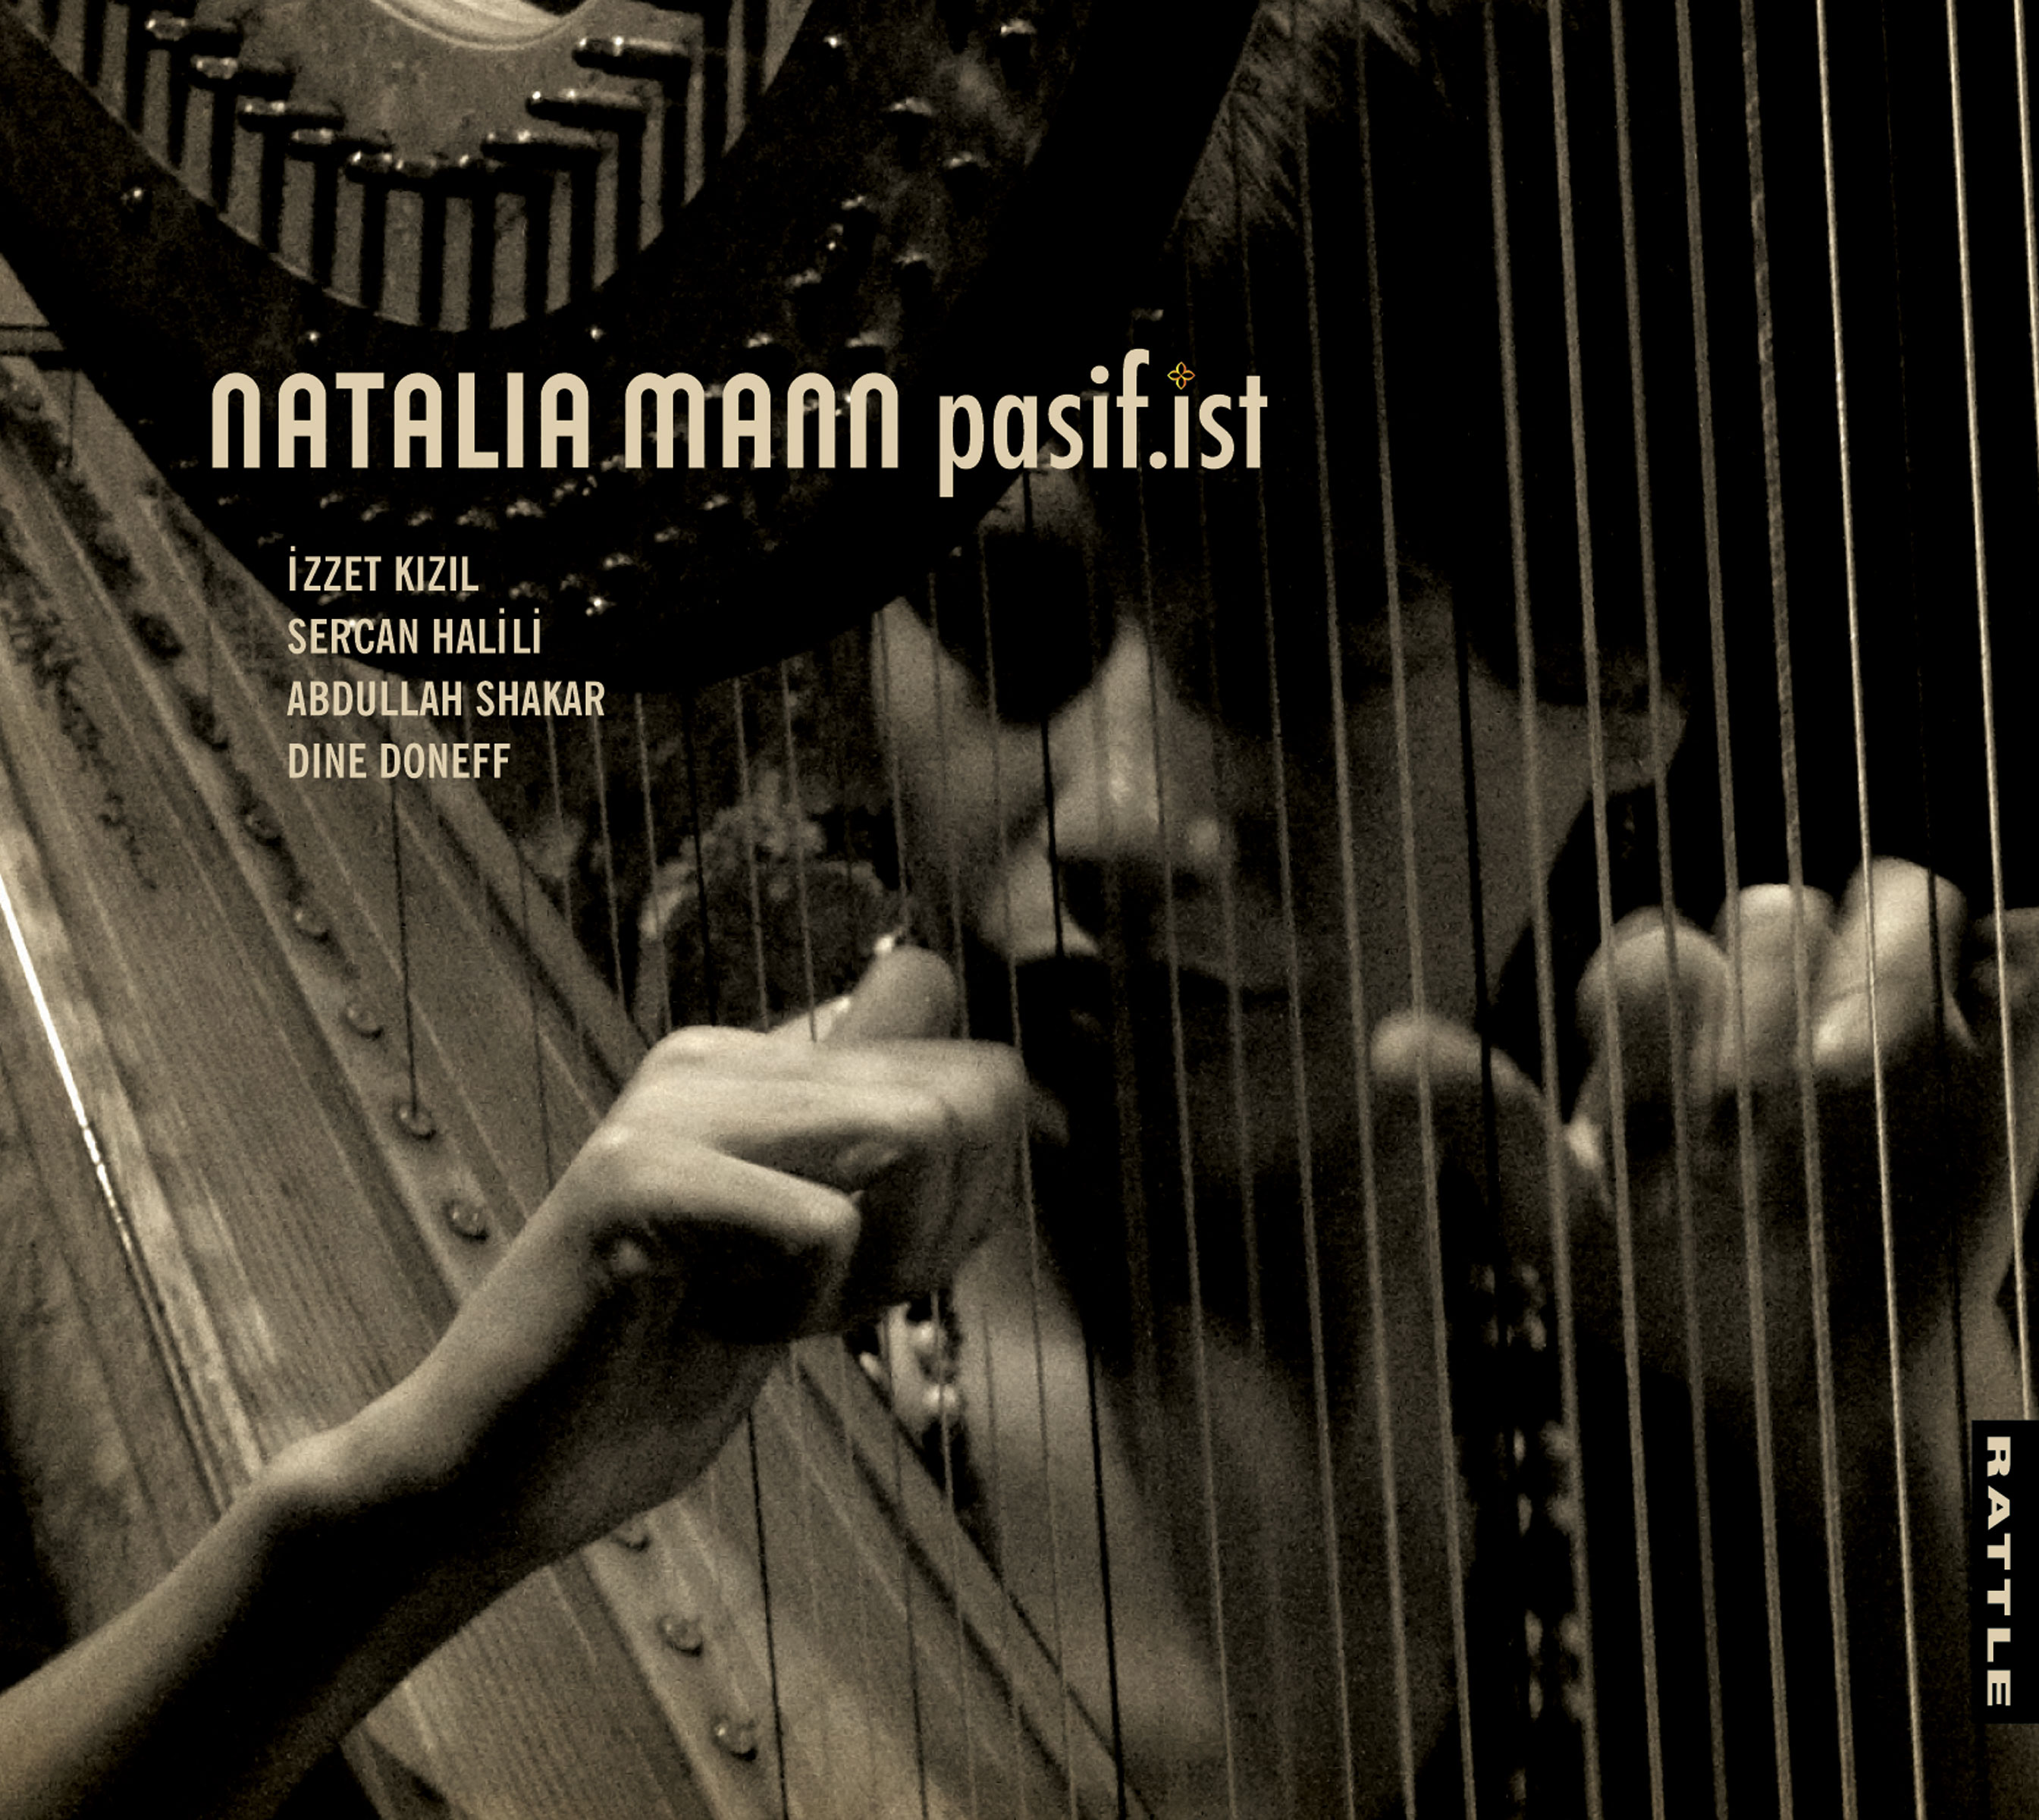 Natalia Mann | Pasif.Ist - downloadable MP3 ALBUM